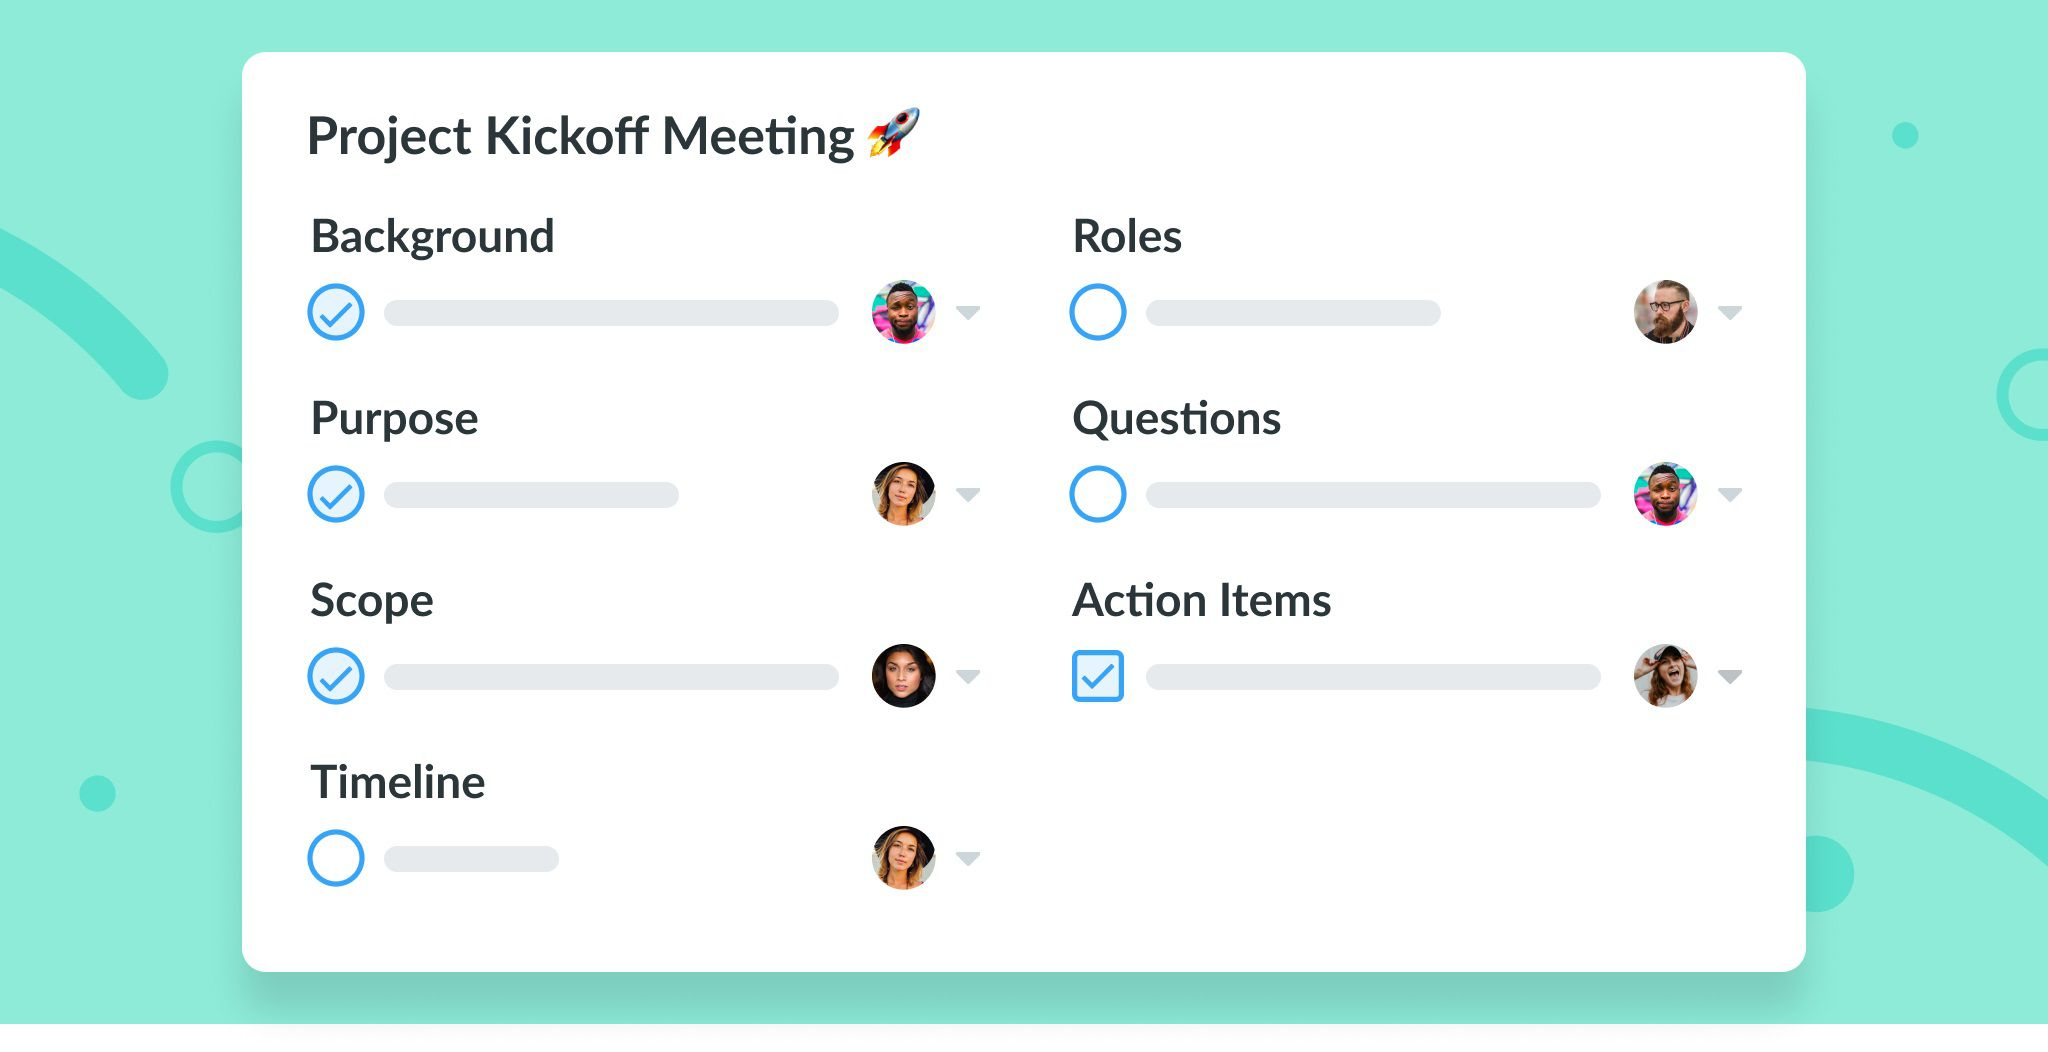 007 Archaicawful Kick Off Meeting Template Inspiration  Invitation Email Agenda Project ManagementFull